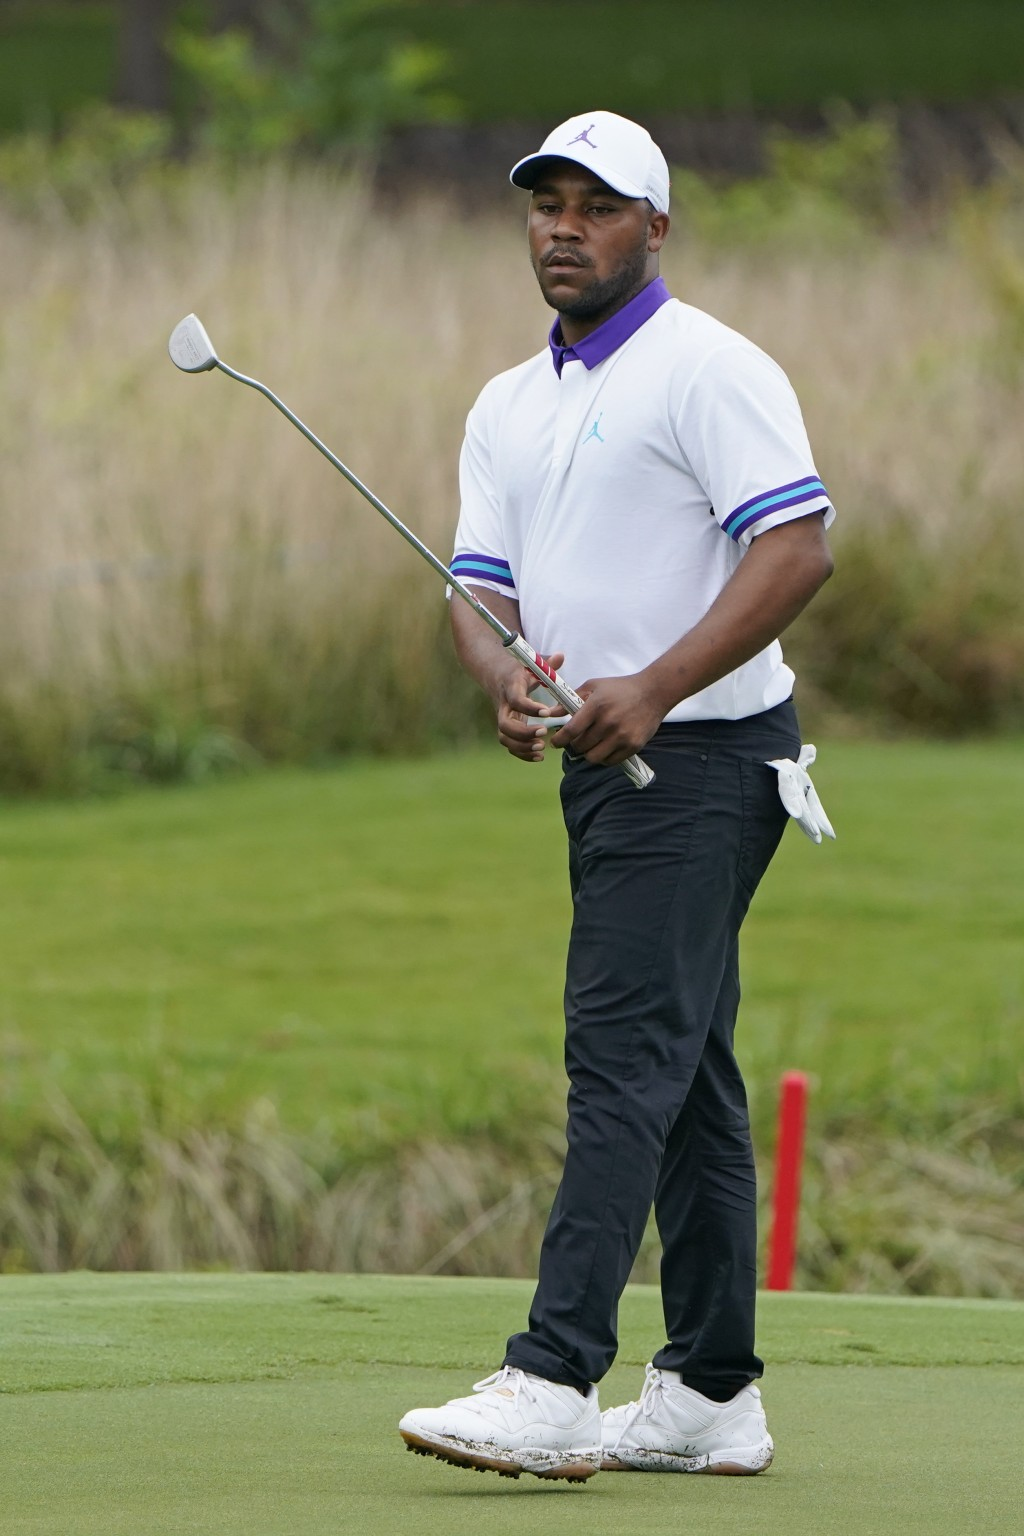 Harold Varner III misses his birdie putt attempt on the seventh hole during the first round of the Wyndham Championship golf tournament at Sedgefield ...